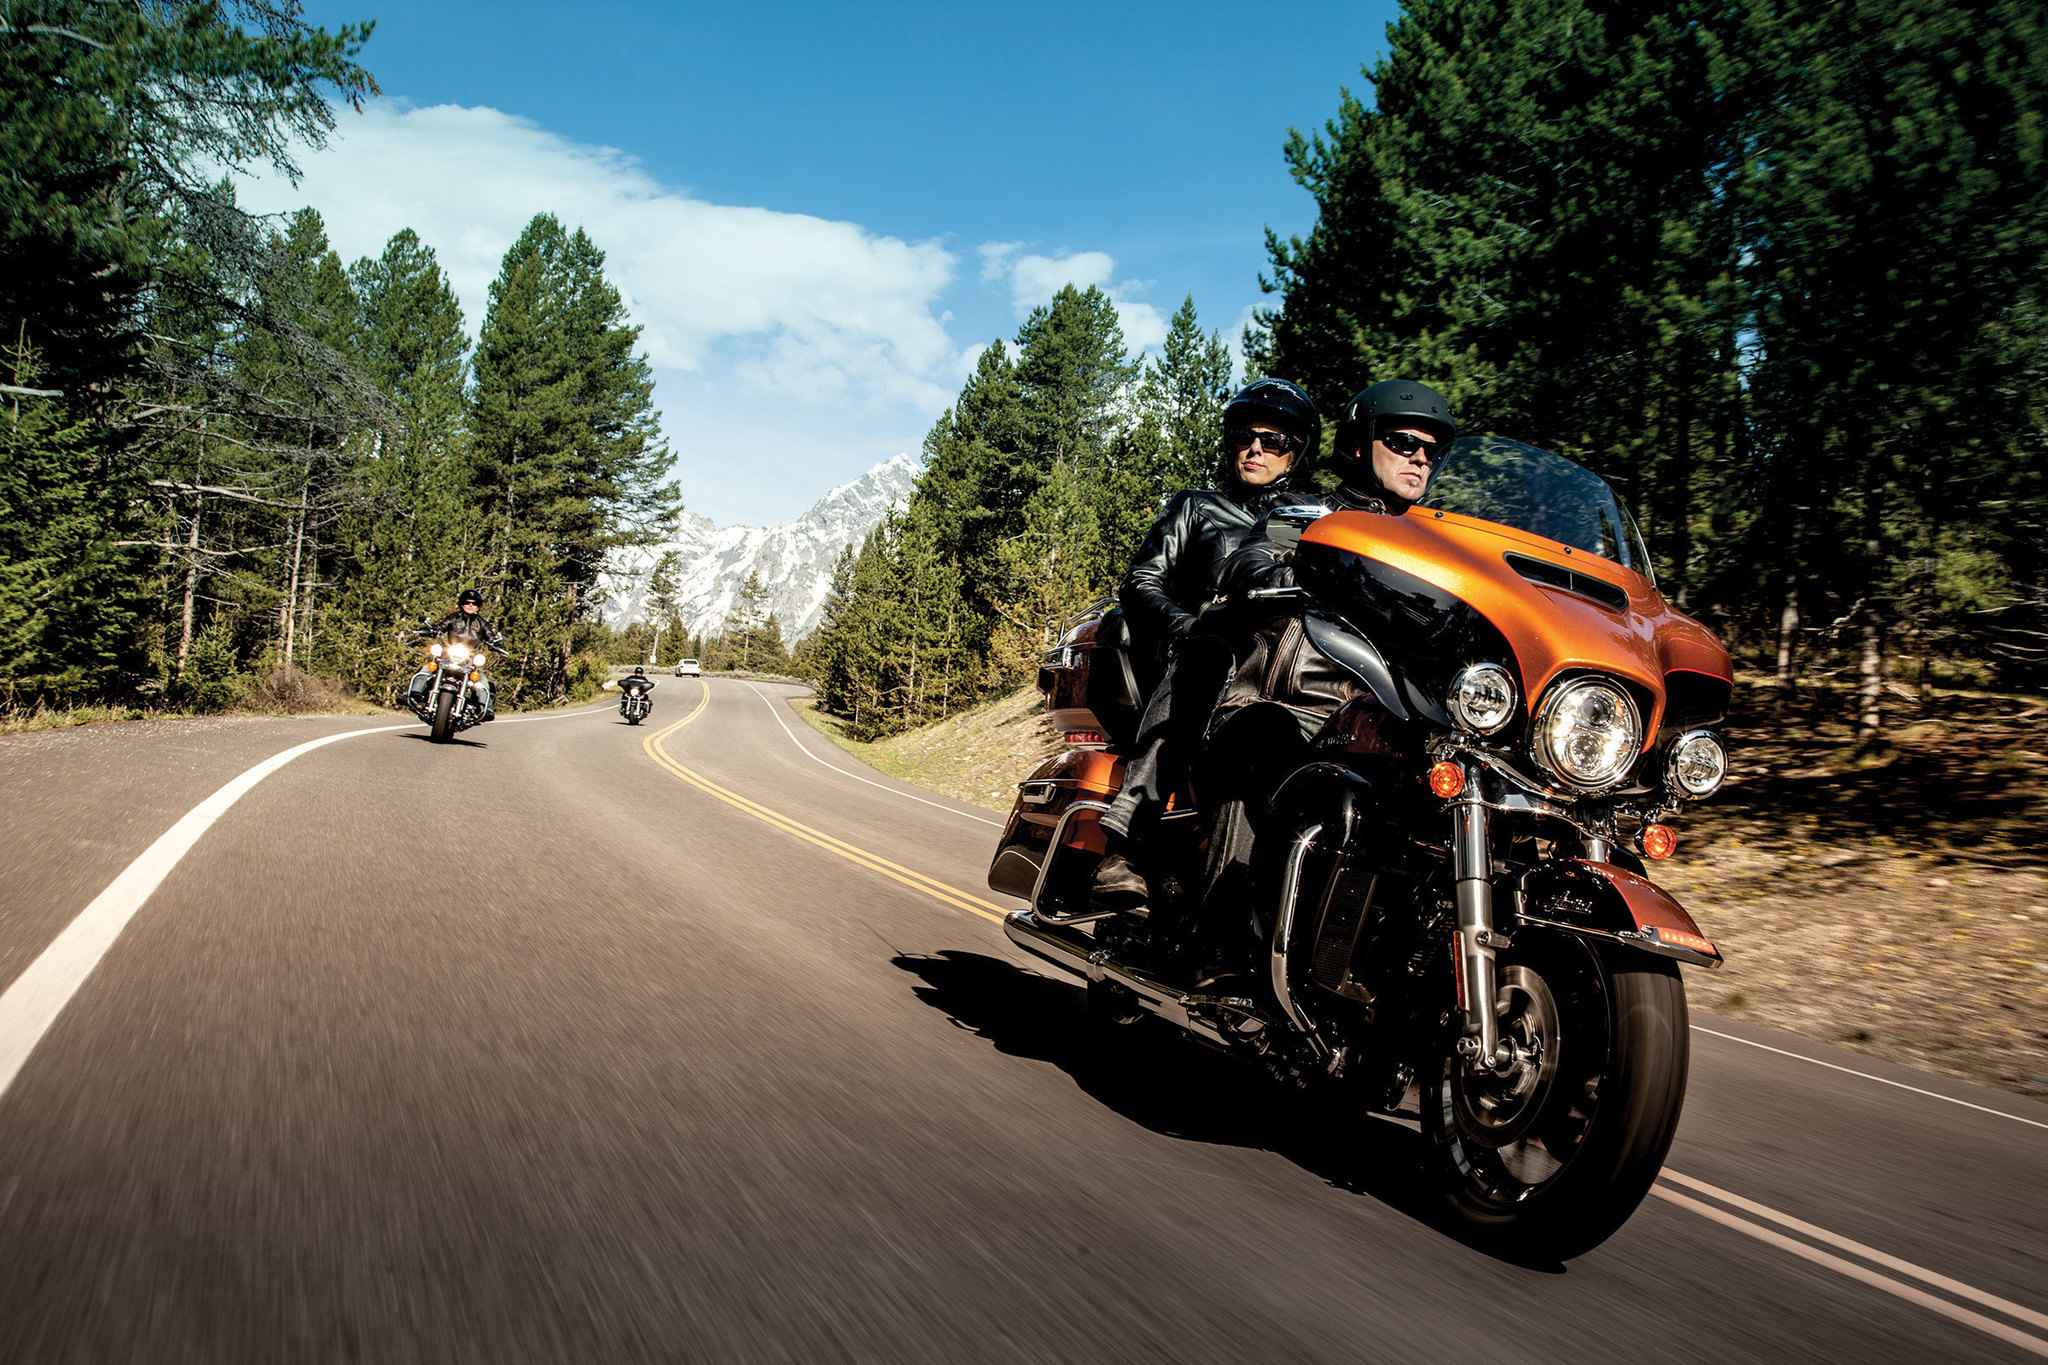 consumer reports will continue controversial motorcycle ratings